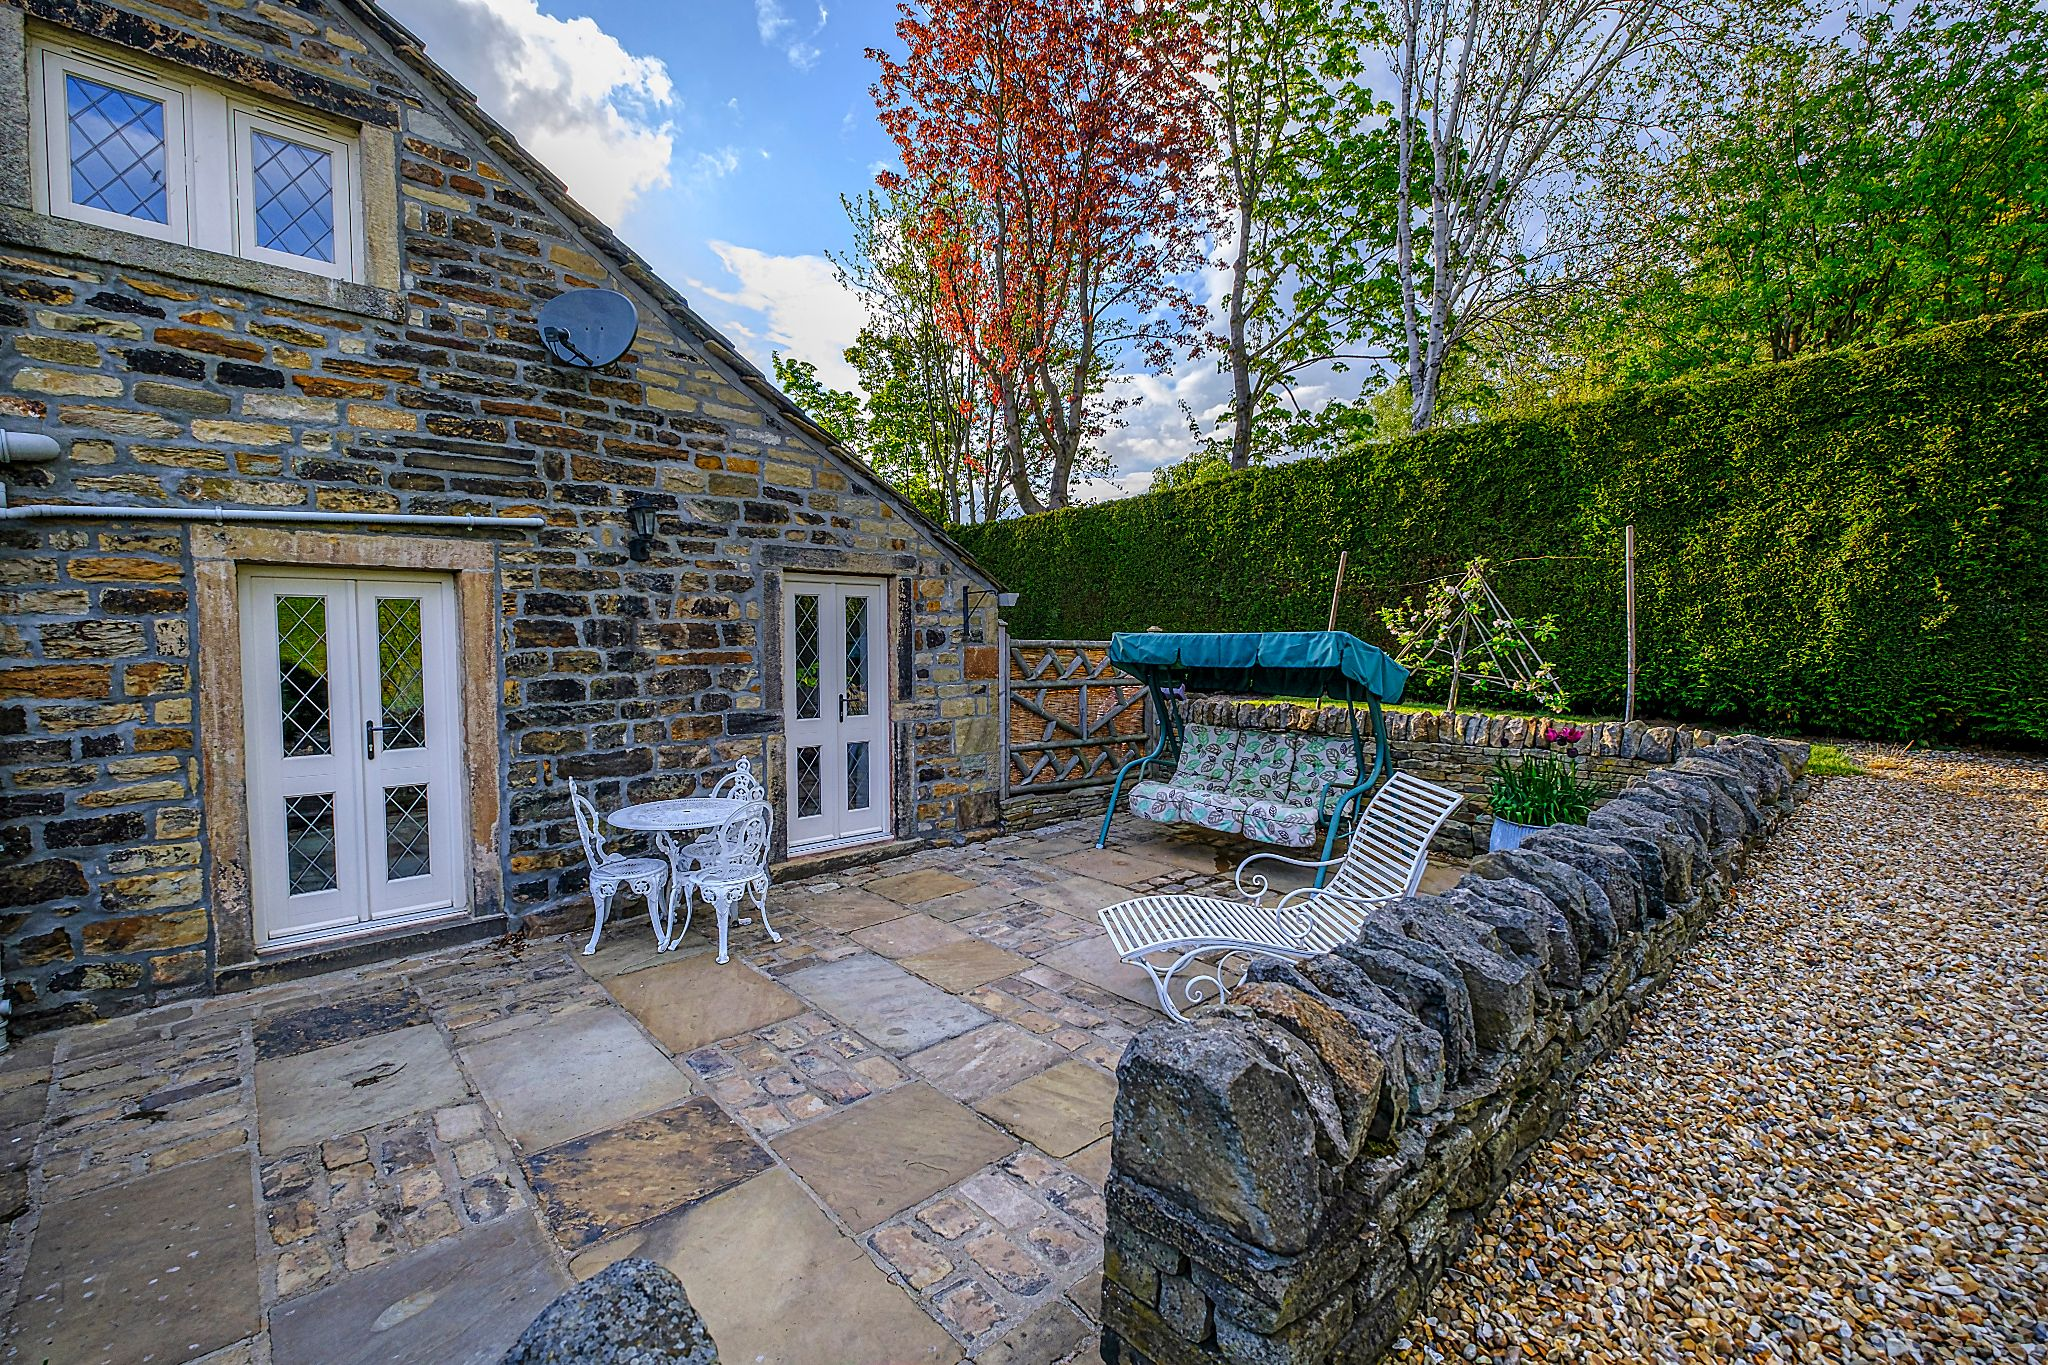 Farm House For Sale in Halifax - Side gdn 1.